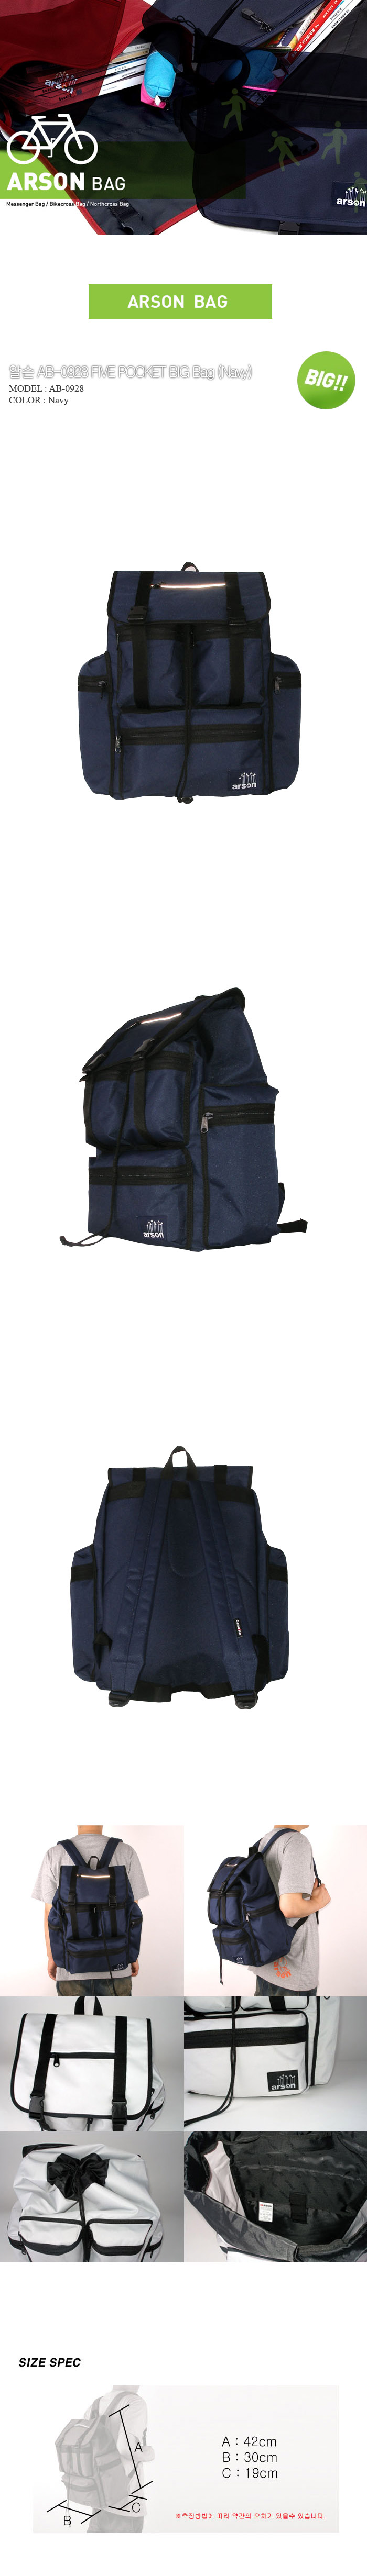 [ ARSON ] AB-0928 (Navy)/Backpack School Bag